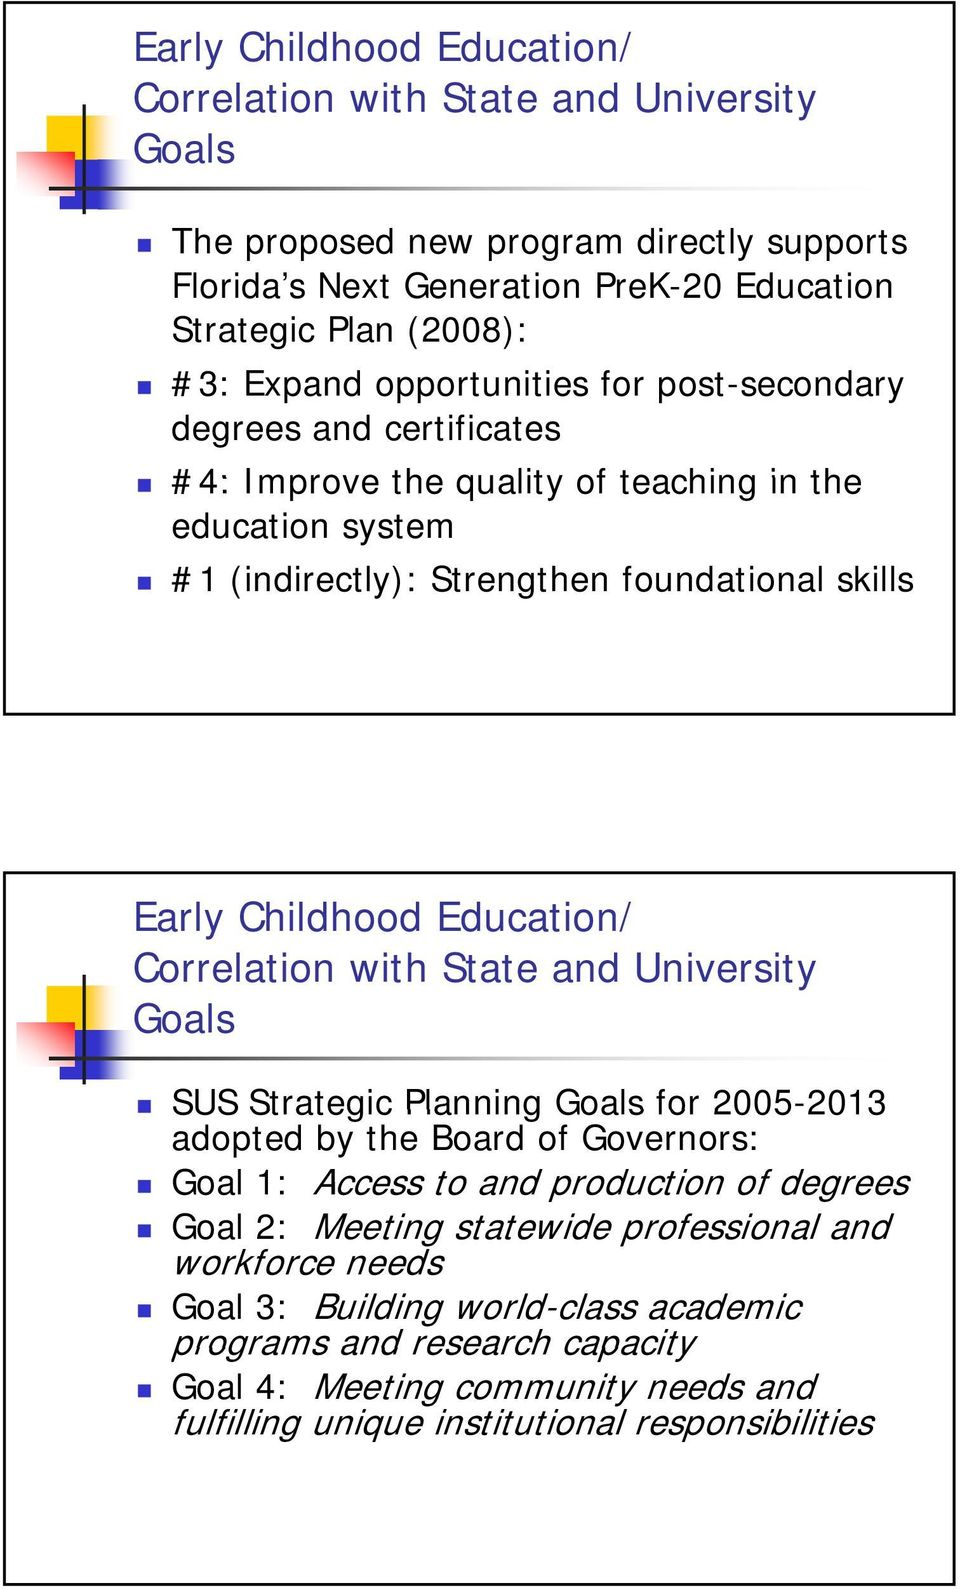 University Goals SUS Strategic Planning Goals for 2005-2013 2013 adopted by the Board of Governors: Goal 1: Access to and production of degrees Goal 2: Meeting statewide